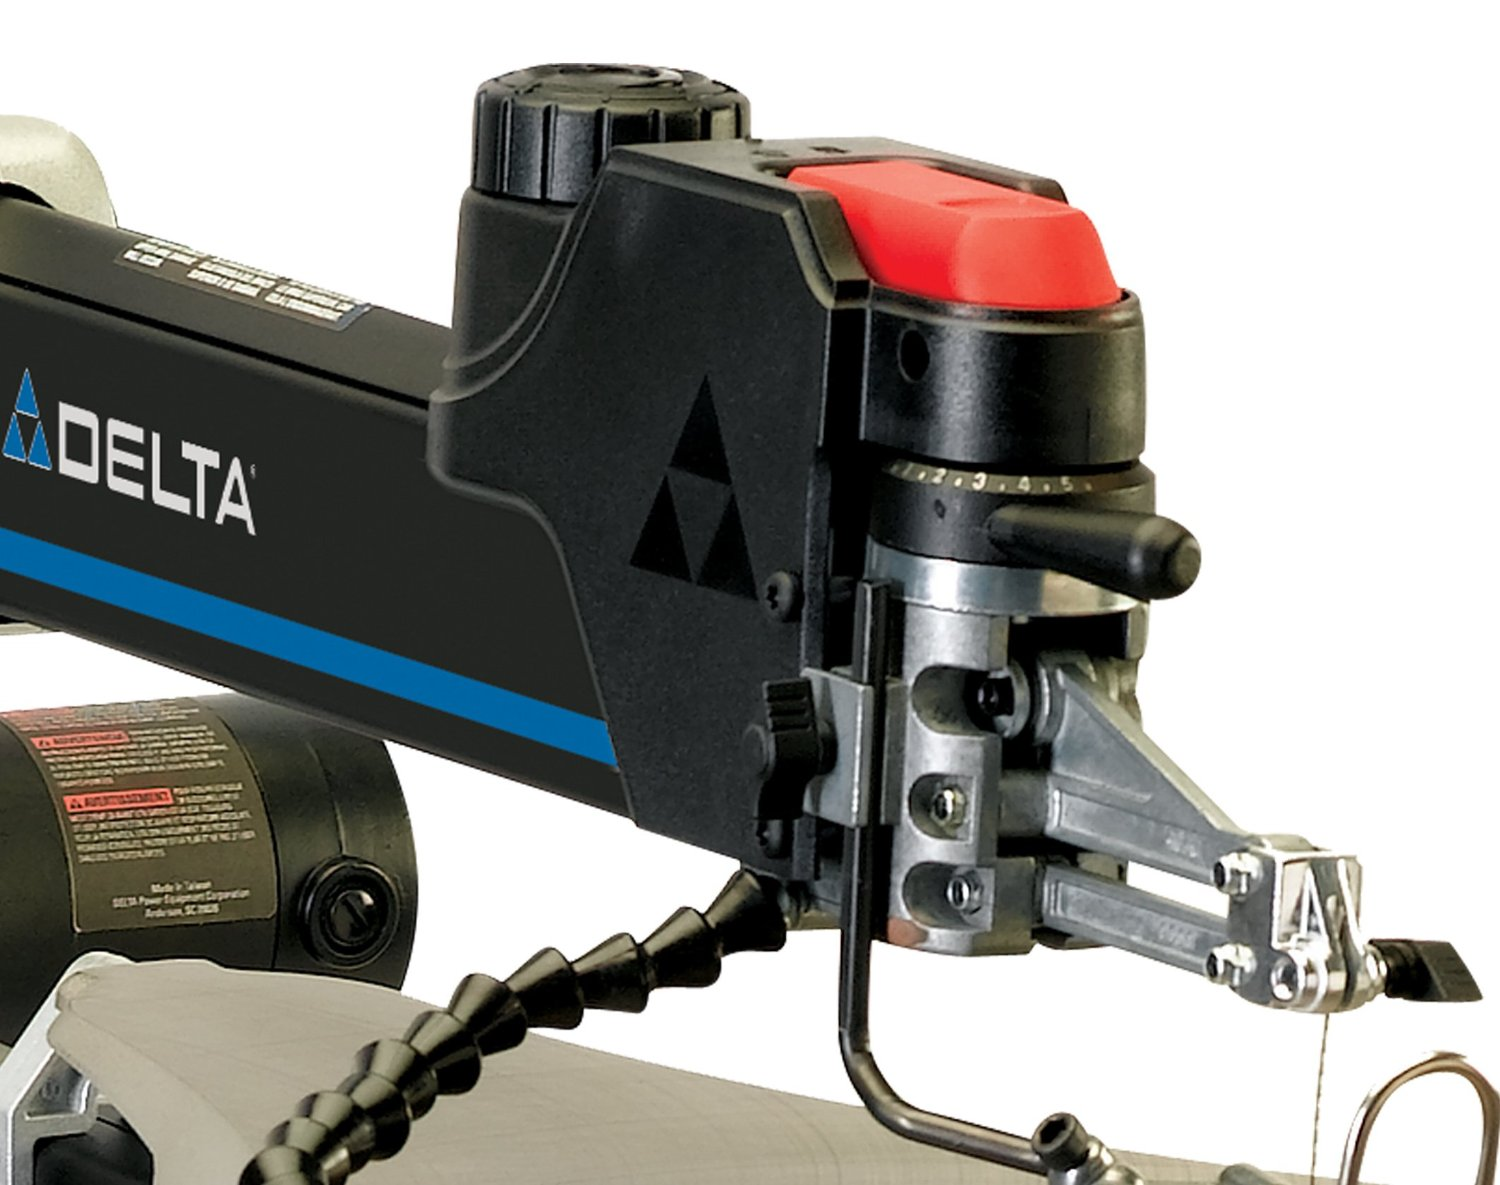 Delta scroll saw 40 694 review delta scroll saw the length of the machine is perfect and the work light provided illuminates a good radius without throwing any shadows greentooth